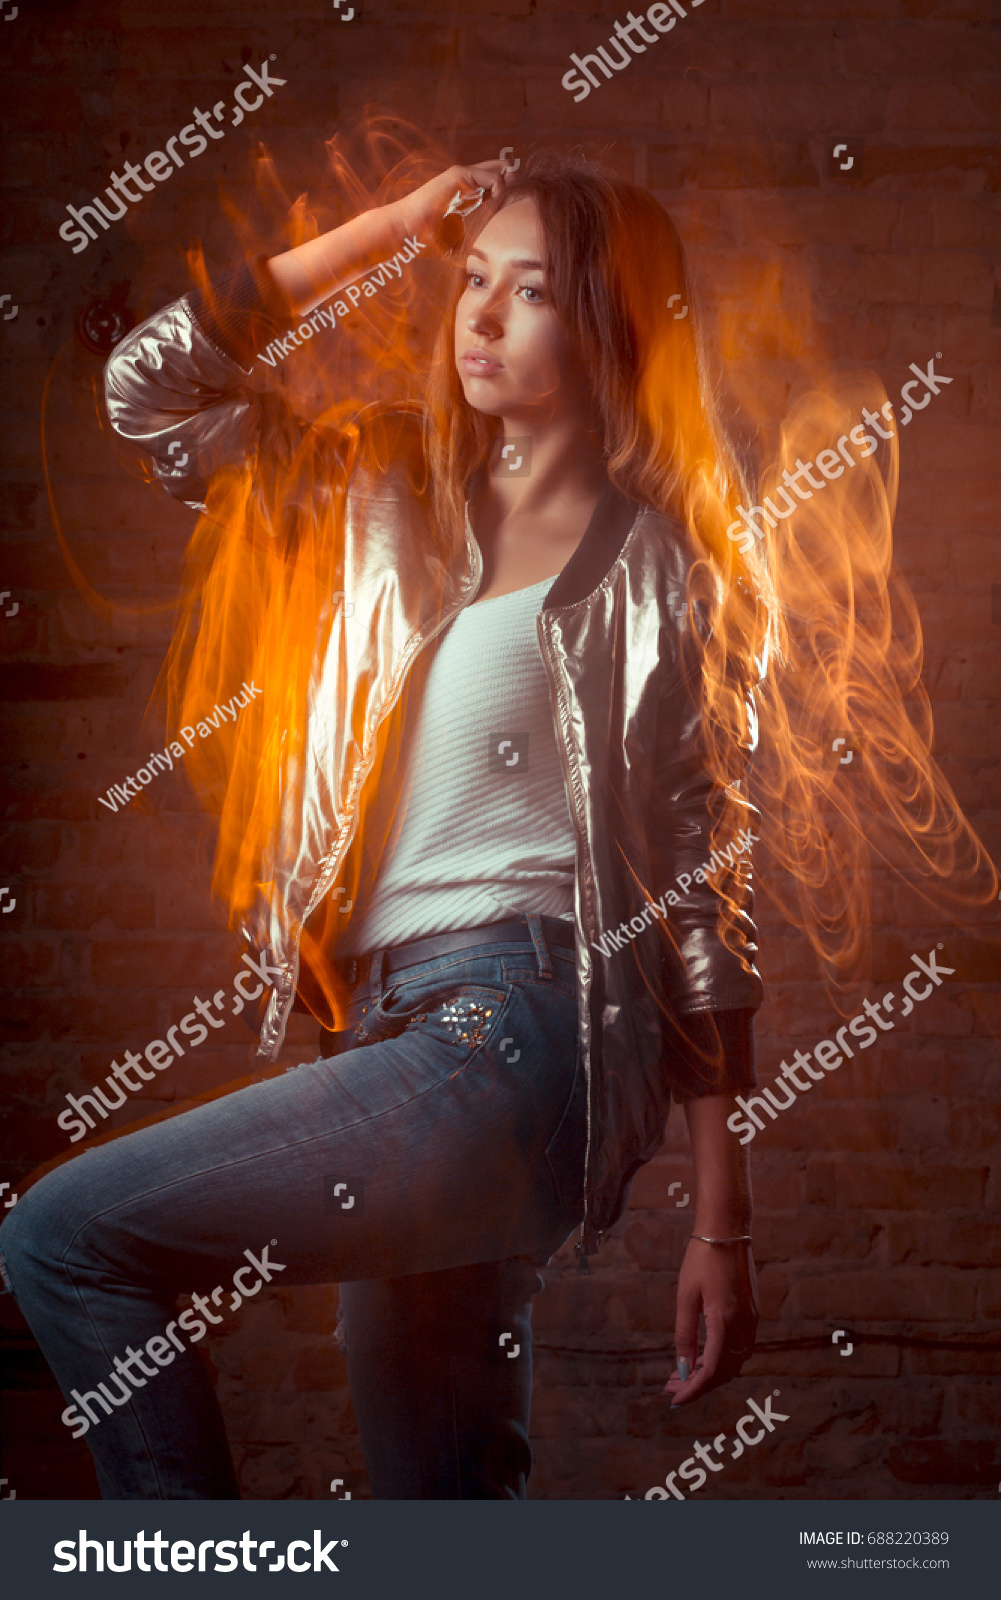 Beautiful brunette woman in shiny silver jacket and blue jeans. Mixed lighting photography & Beautiful Brunette Woman Shiny Silver Jacket Stock Photo 688220389 ... azcodes.com